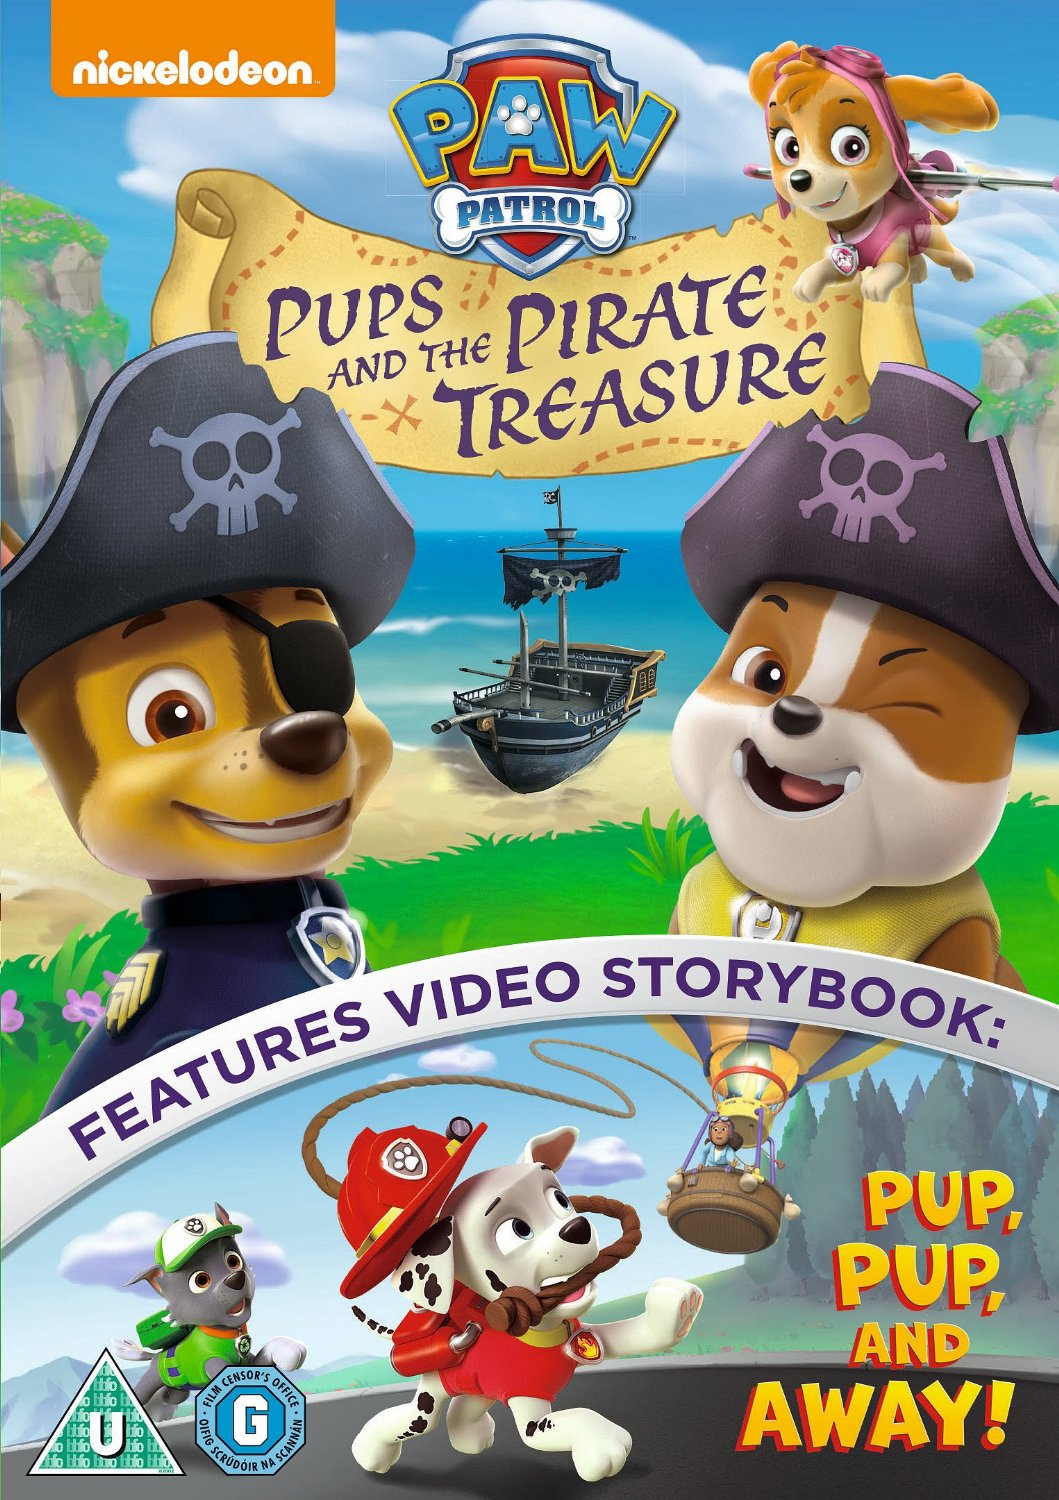 Paw Patrol Pups and the Pirate Treasure Colouring Page Printables and DVD Giveaway